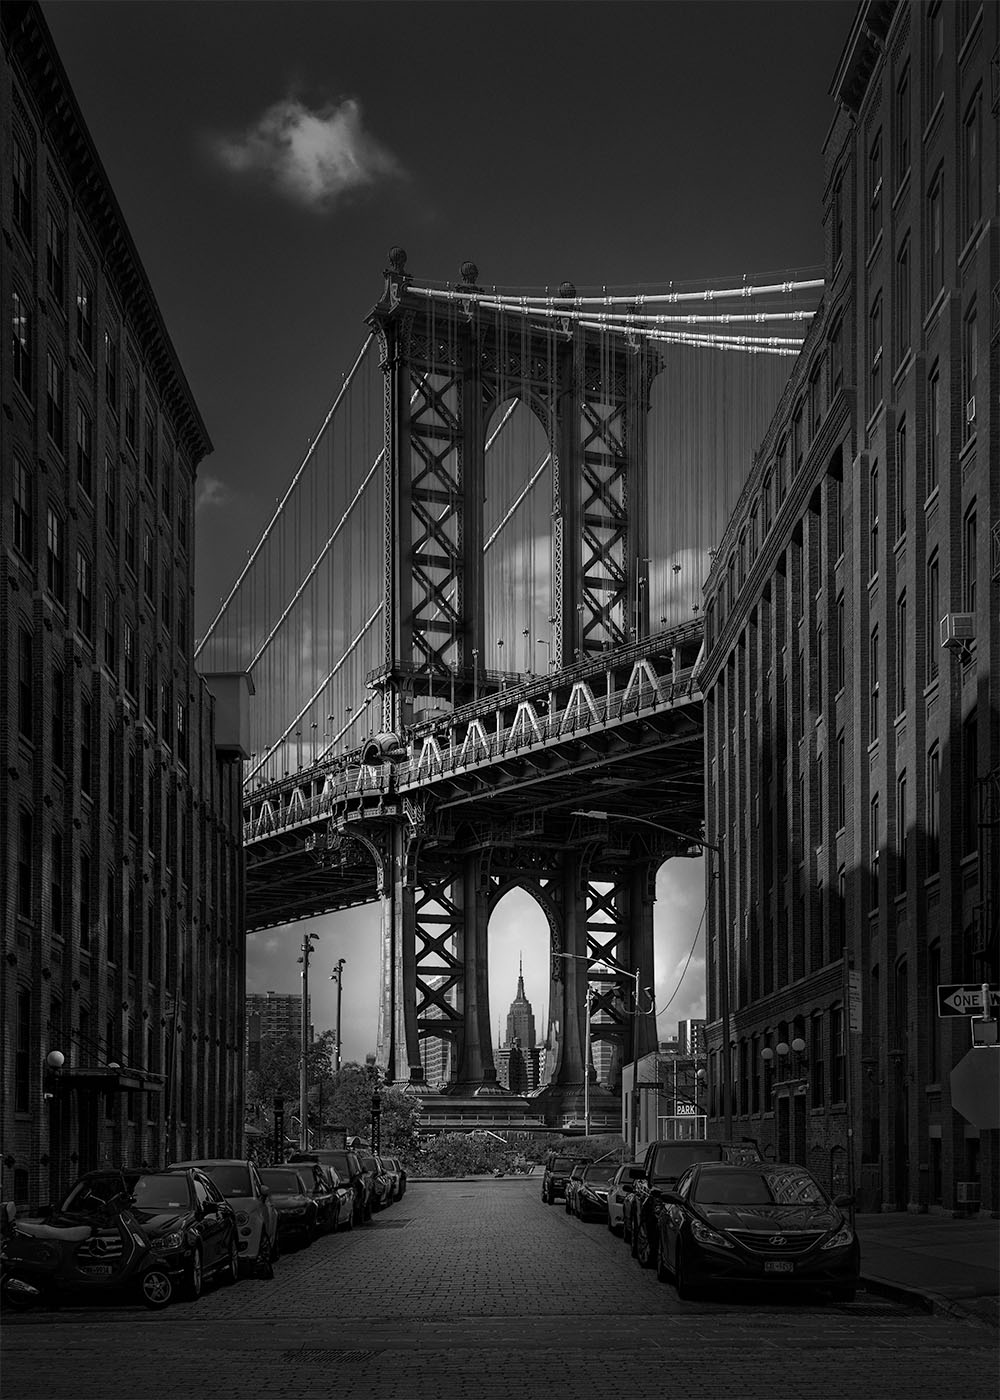 Time Travel - New York - Julia Anna Gospodarou - Award-Winning Architectural Photography